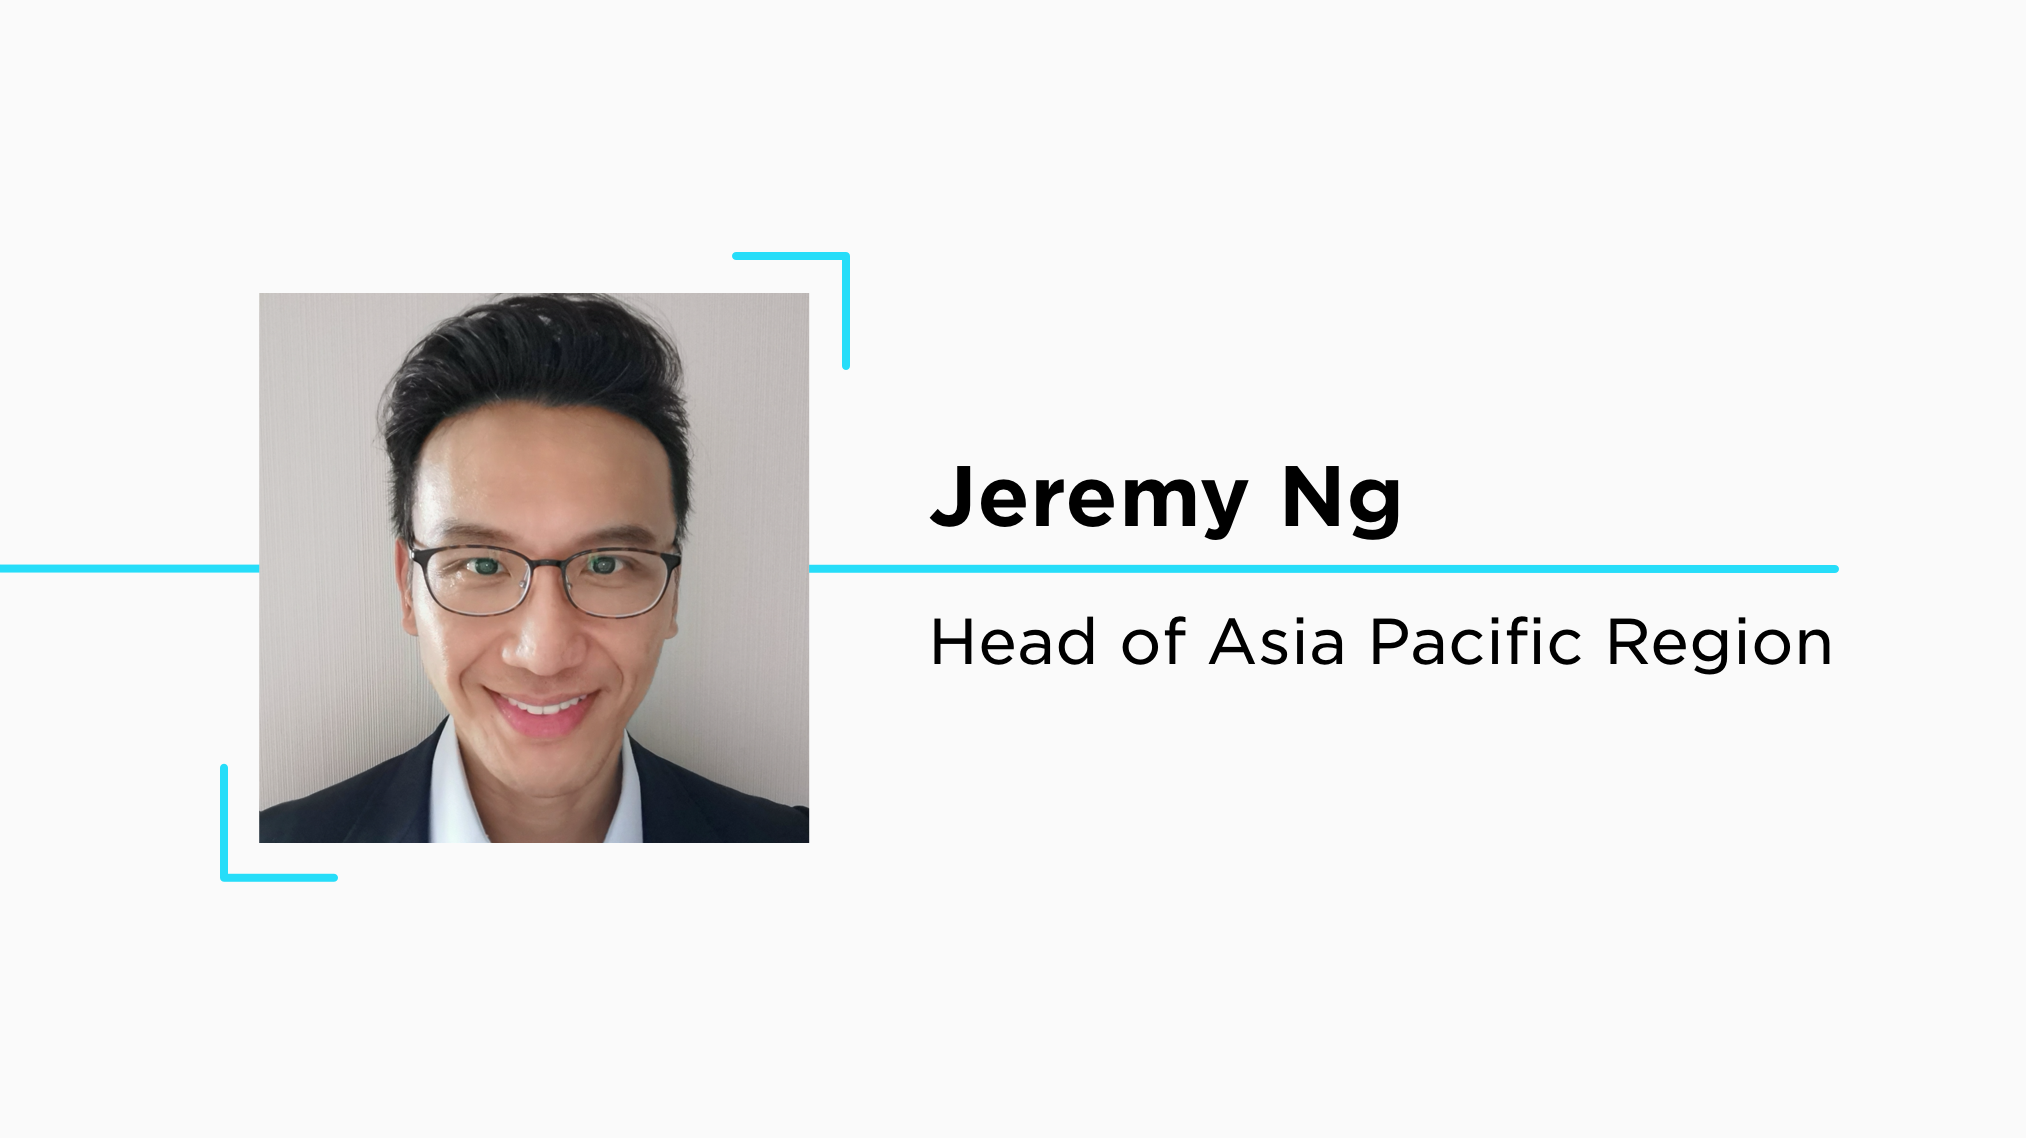 Gemini Welcomes Jeremy Ng as Head of Asia Pacific Region